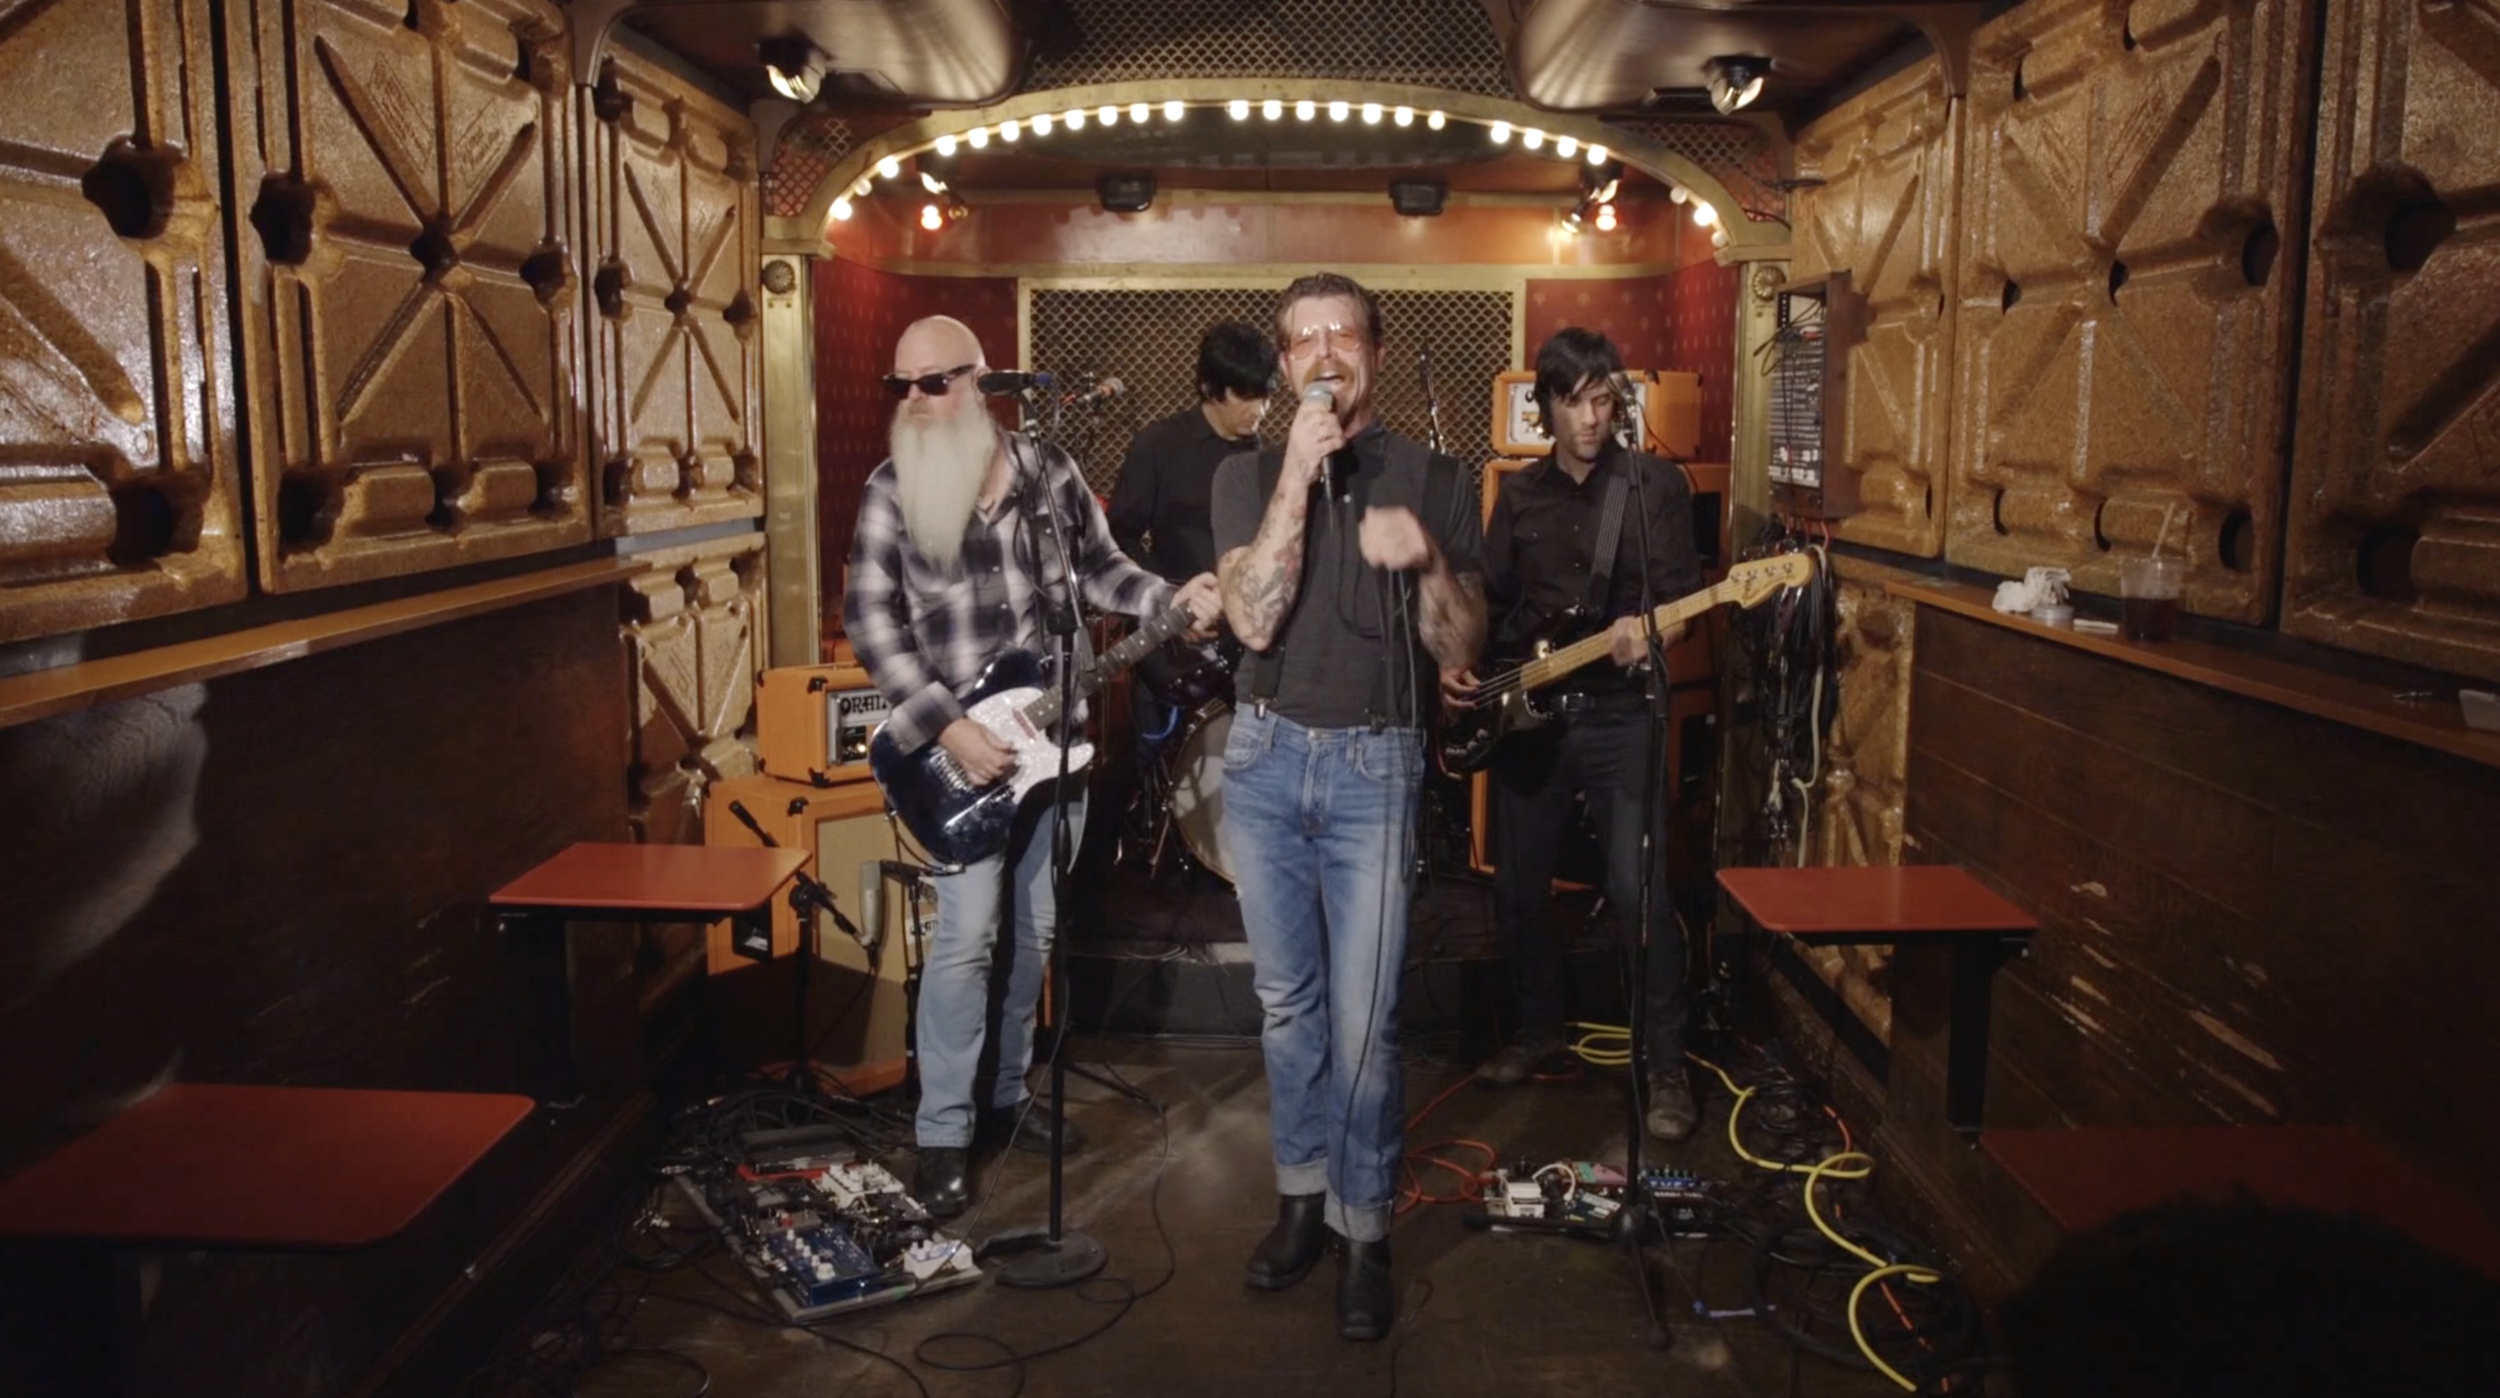 Eagles of Death Metal, Location Filming and Audio Recording, for The New York Times. Captured at Pete's Candy Store. 8 Cameras, Multi Track Audio